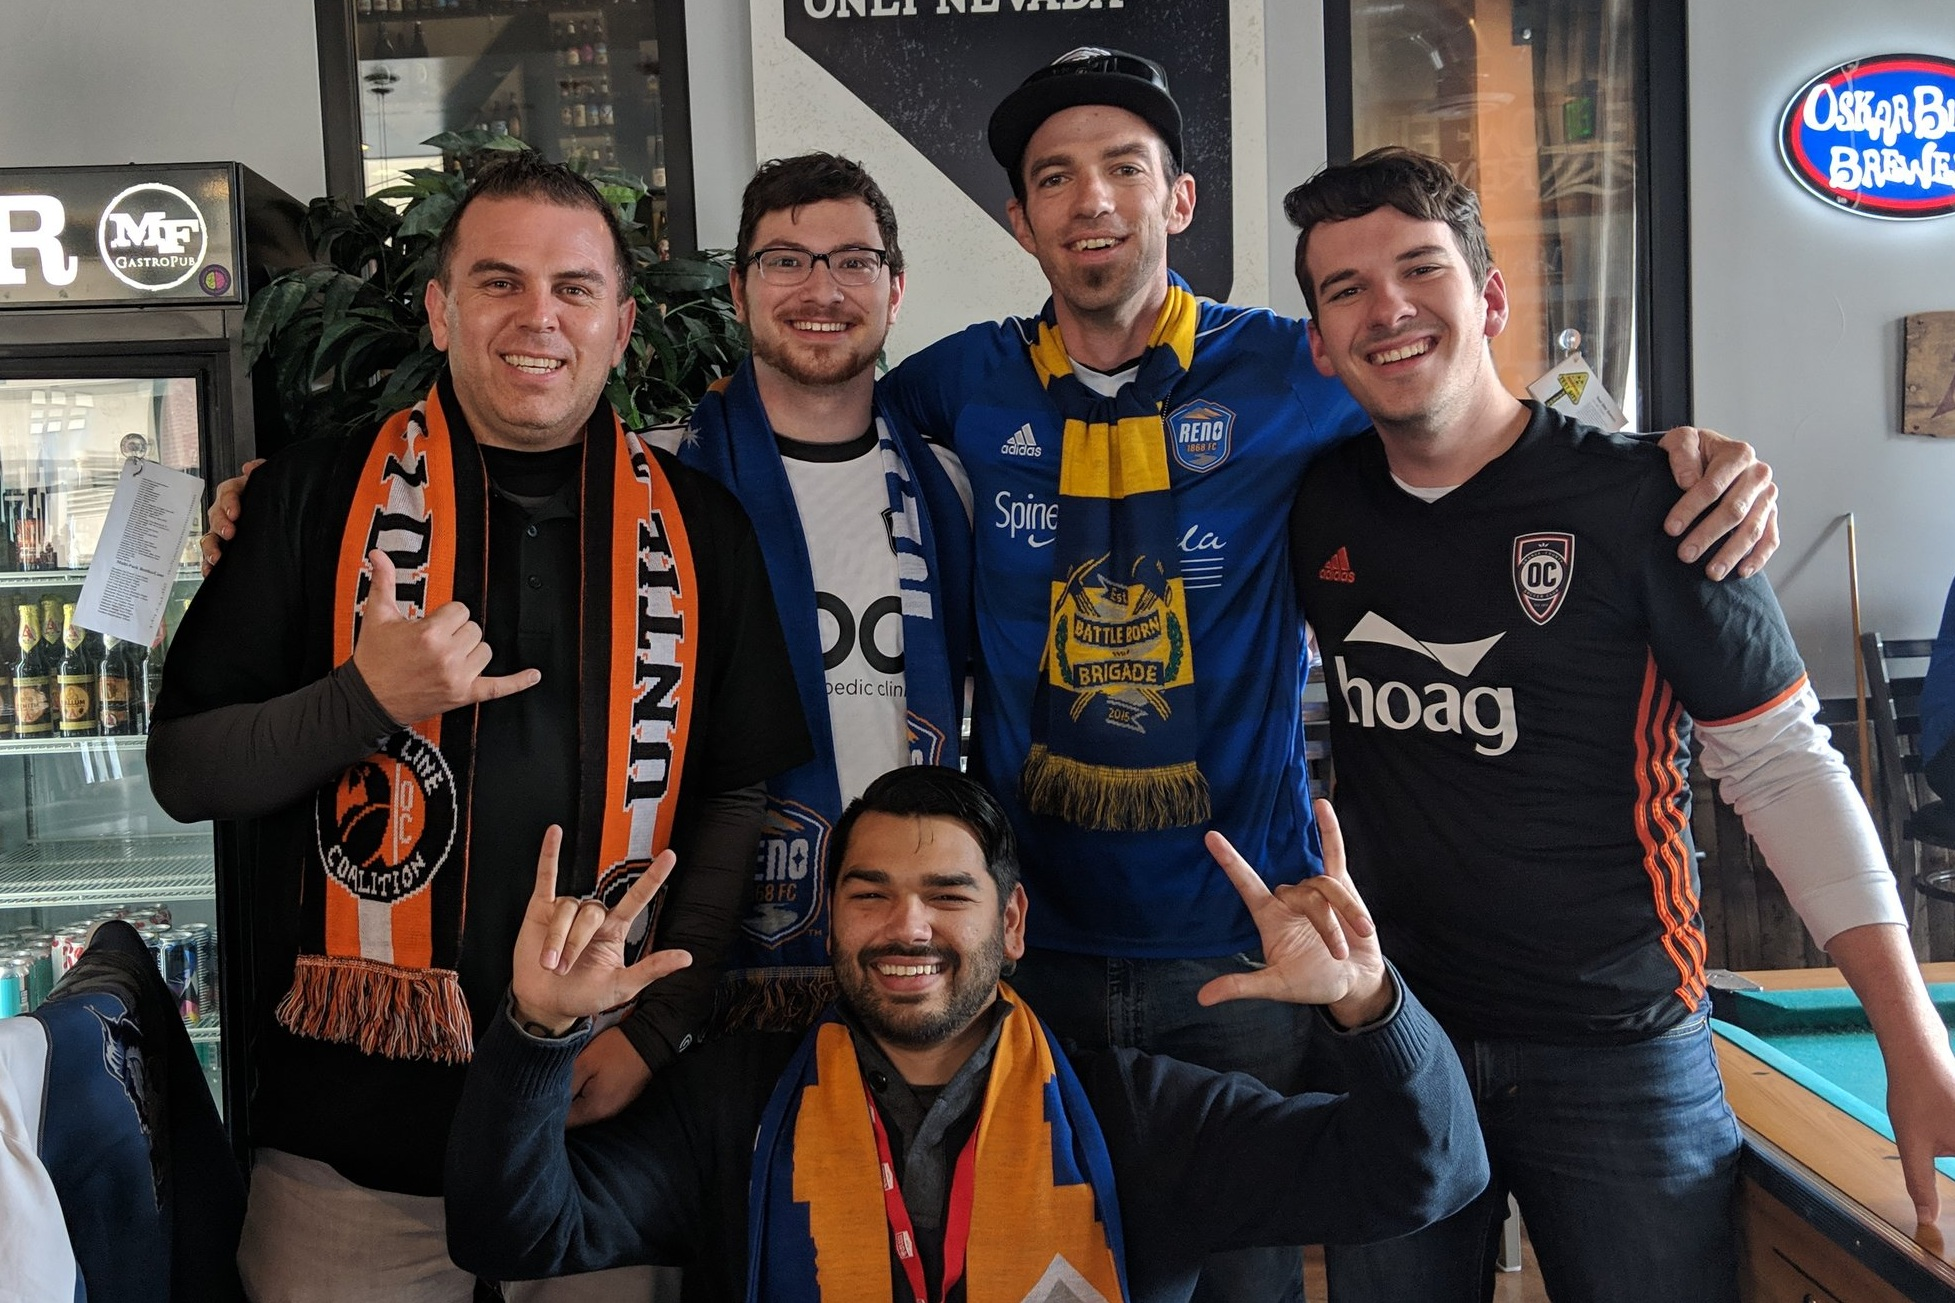 The hosts of Orange & Black SoccerCast and 1868 Weekly hang out before the 2019 USL season opener between Orange County SC and Reno 1868 FC.  |   Photo courtesy of Orange & Black SoccerCast/Ray Samora